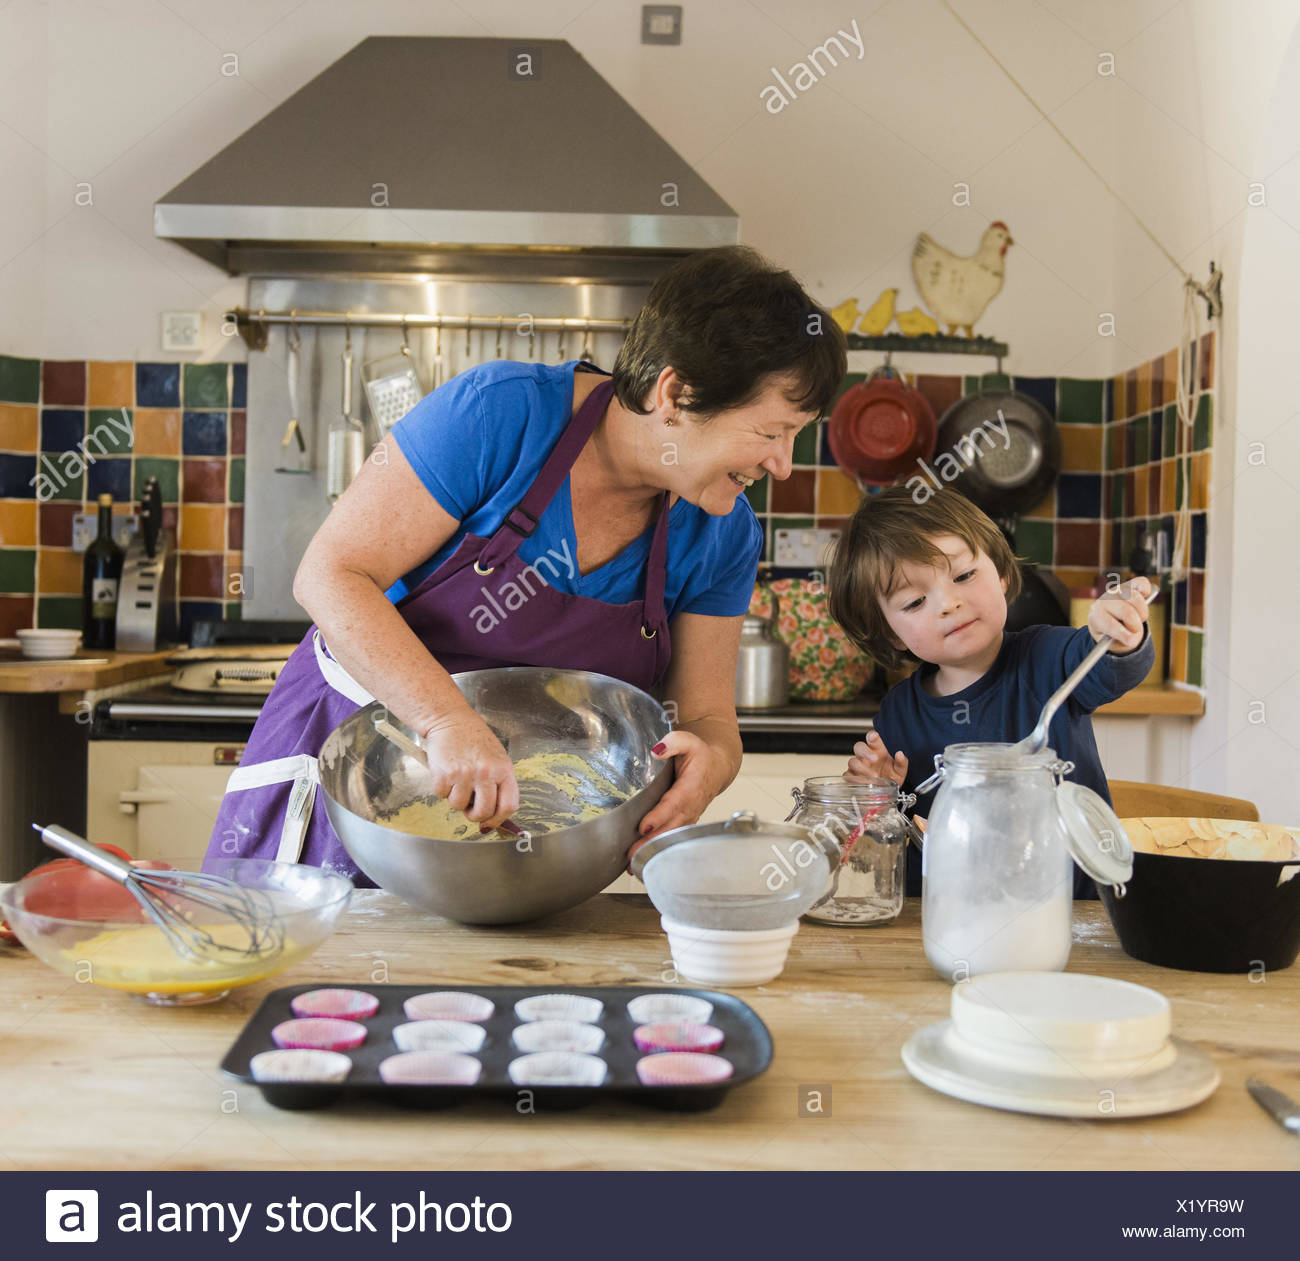 A woman and a child cooking at a kitchen table, making fairy ...